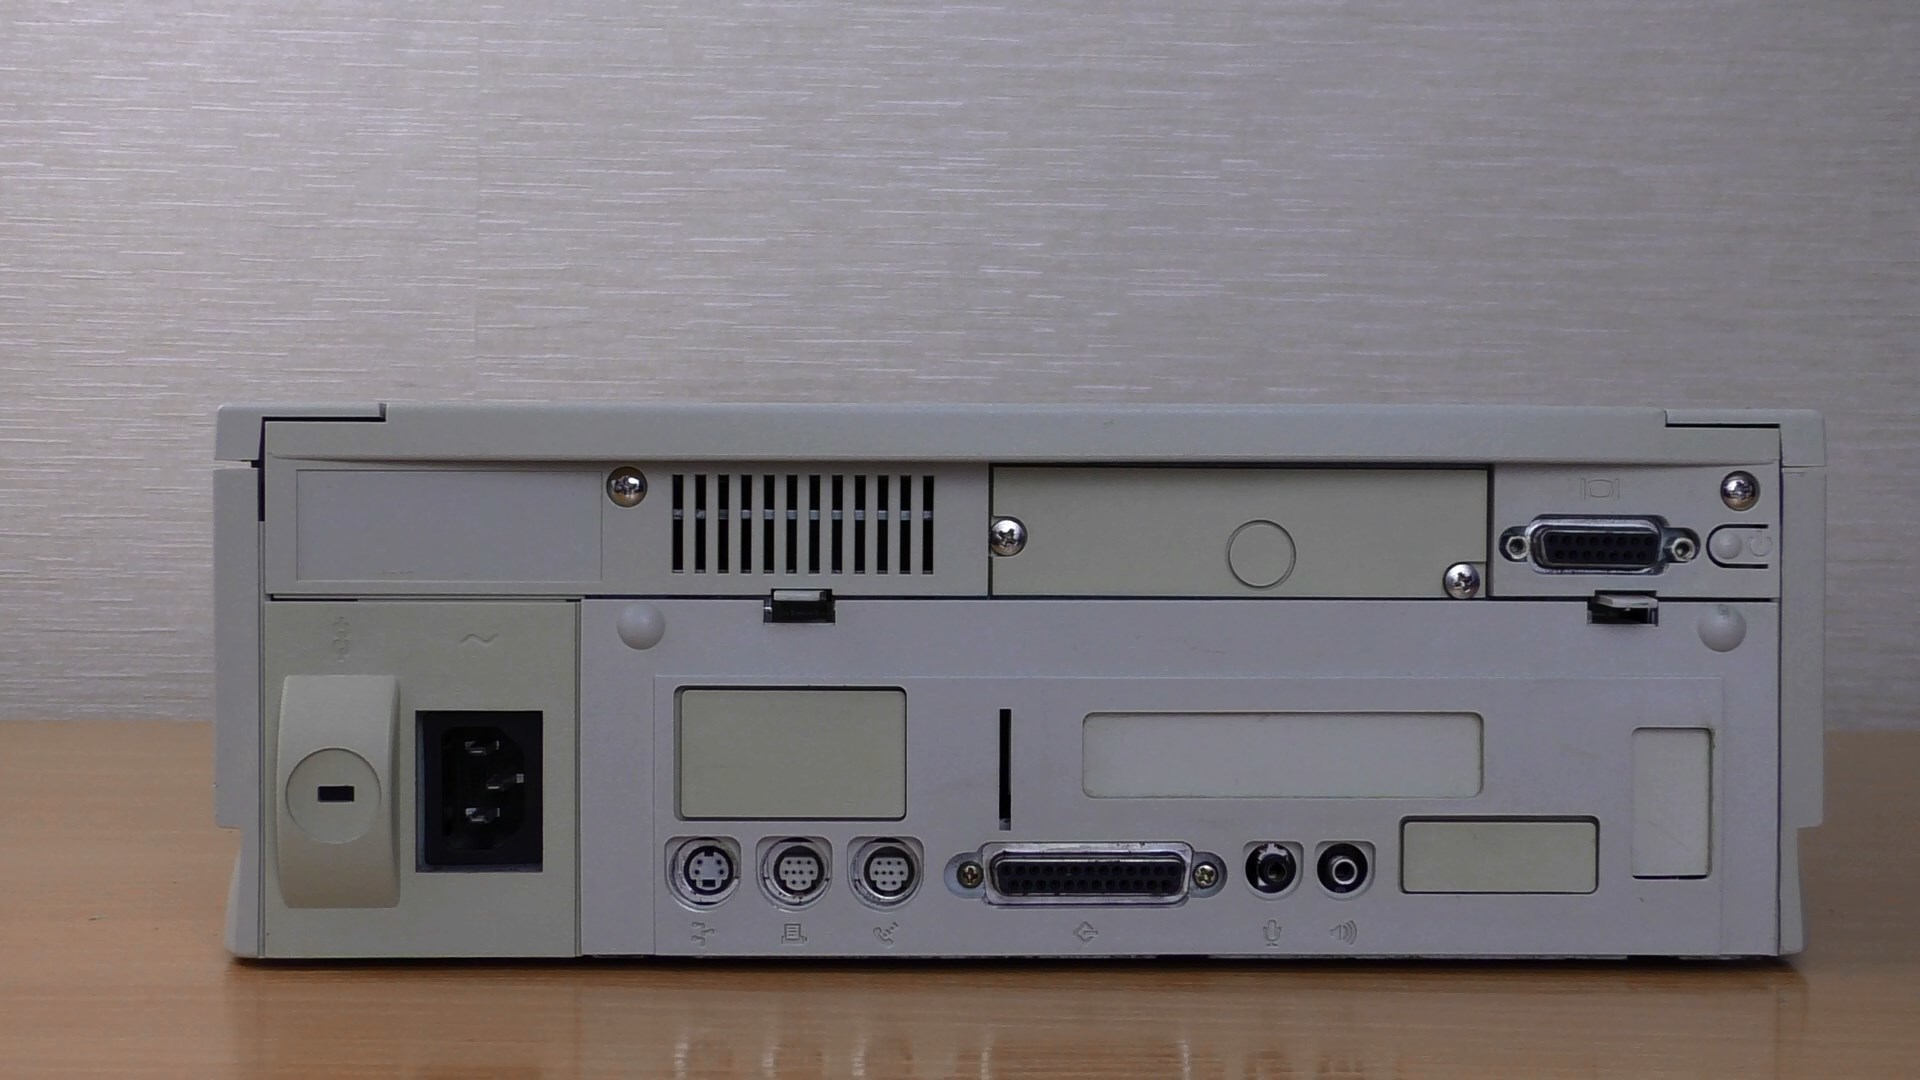 Power Macintosh 6200-75 — компьютер 1995 года (текст и видео — на выбор) - 4